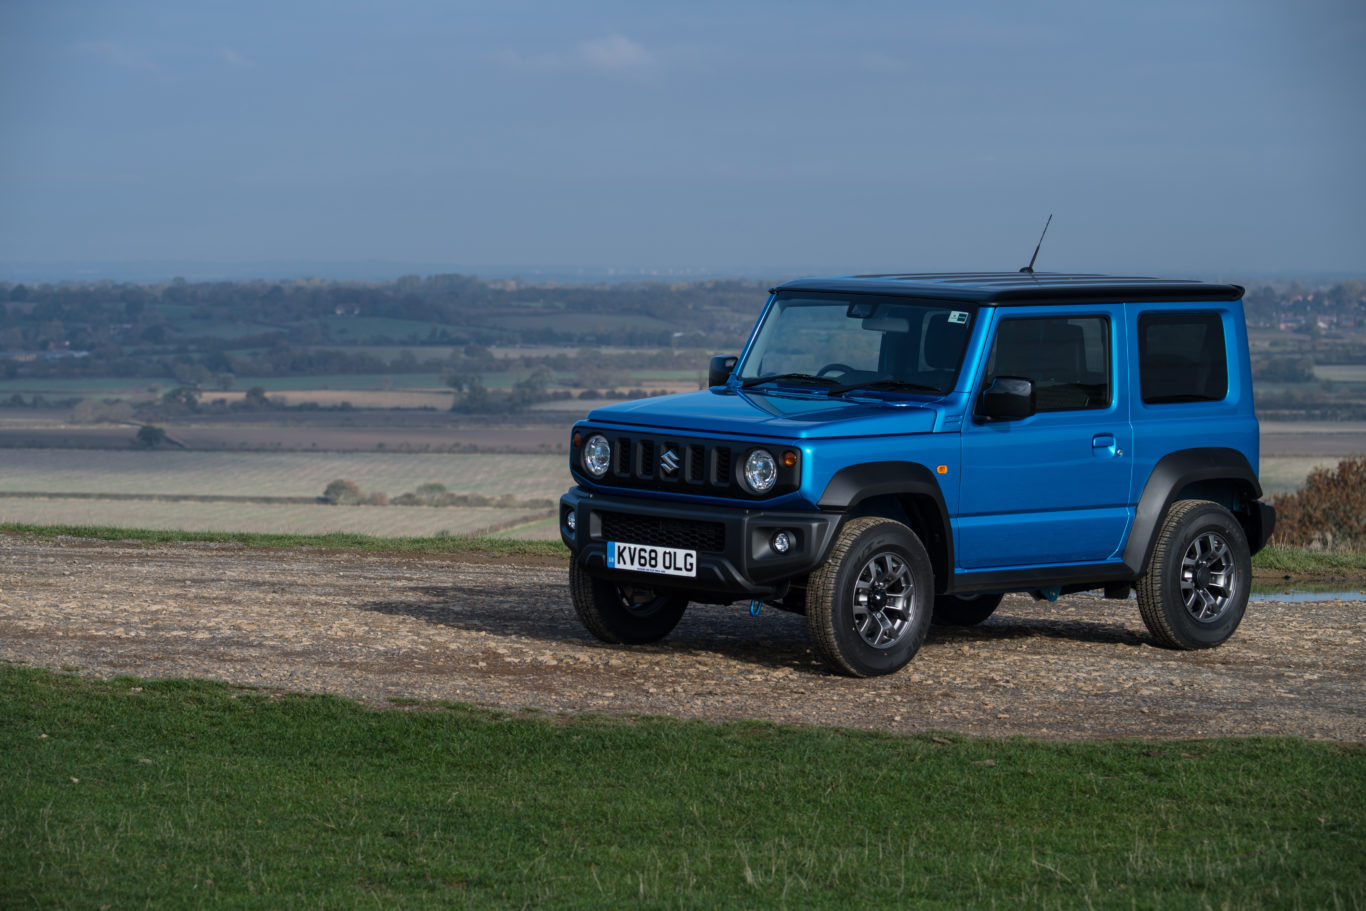 The Jimny's lack of safety tech worked against it in crash tests